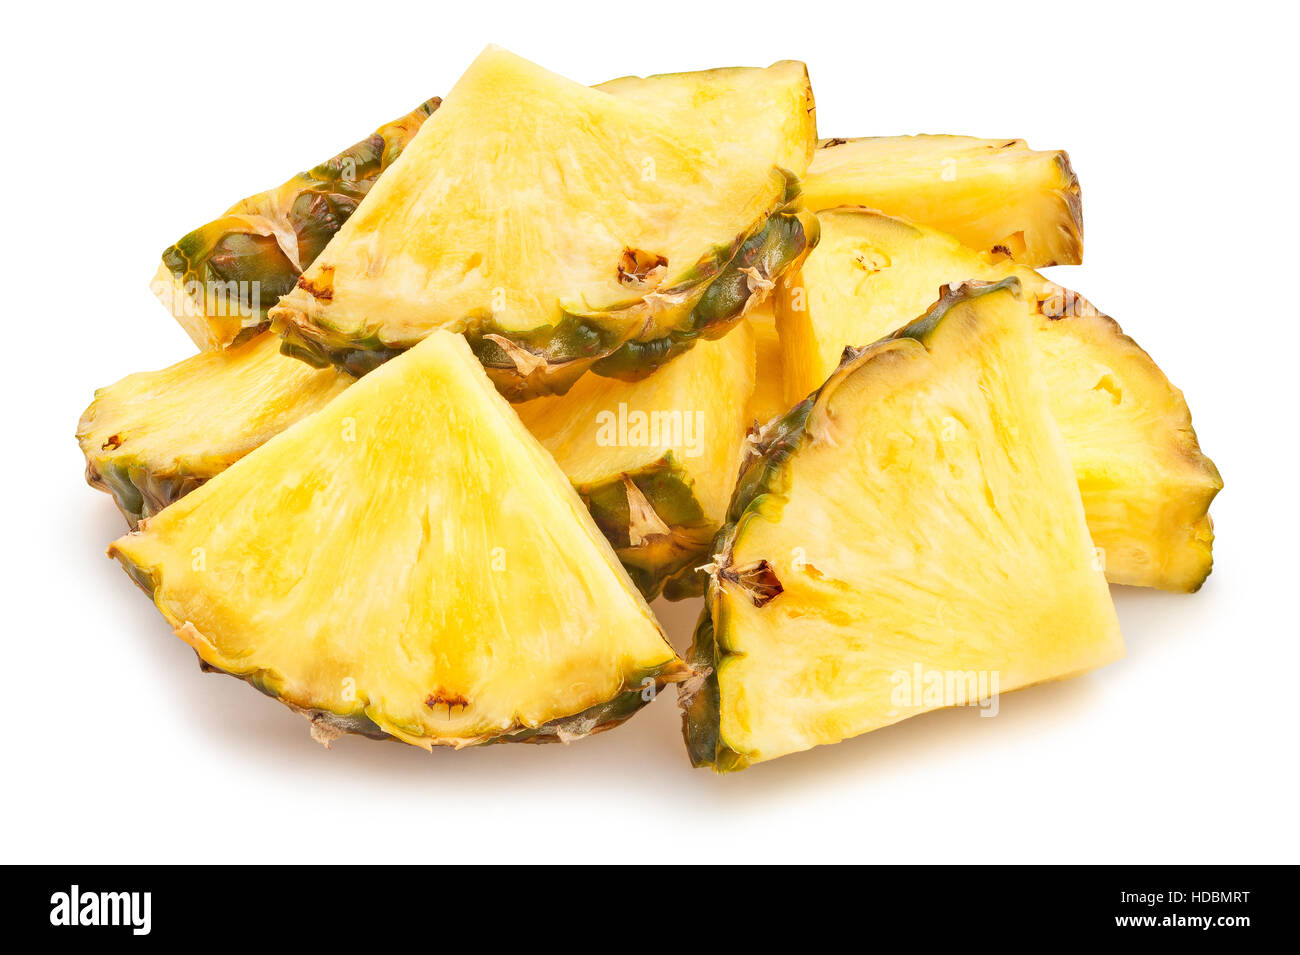 sliced pineapple isolated - Stock Image